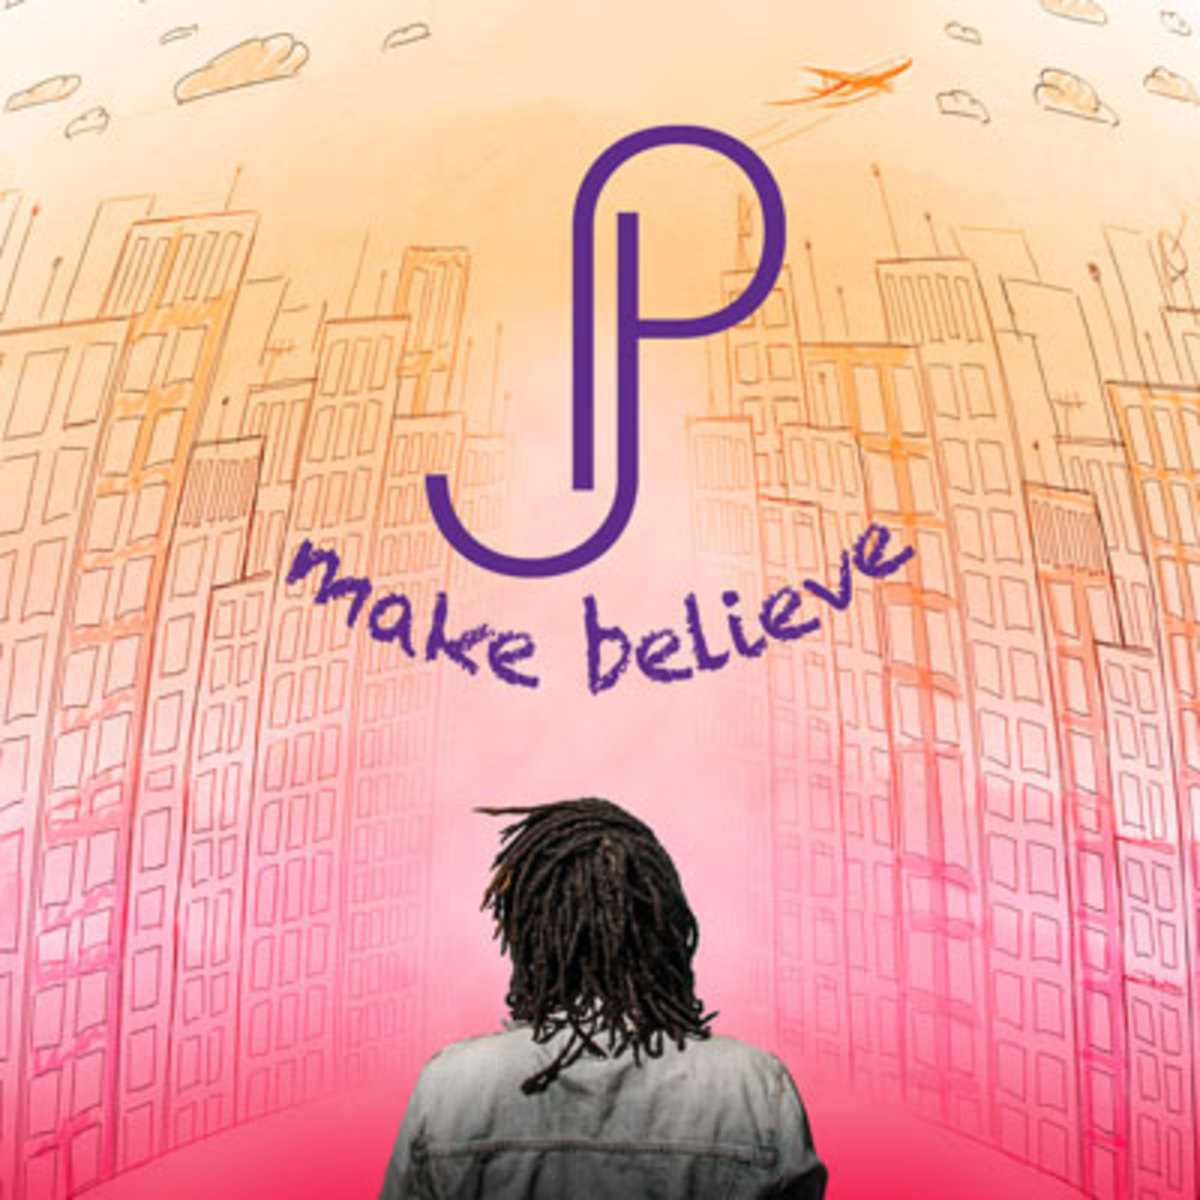 pj-makebelieve.jpg